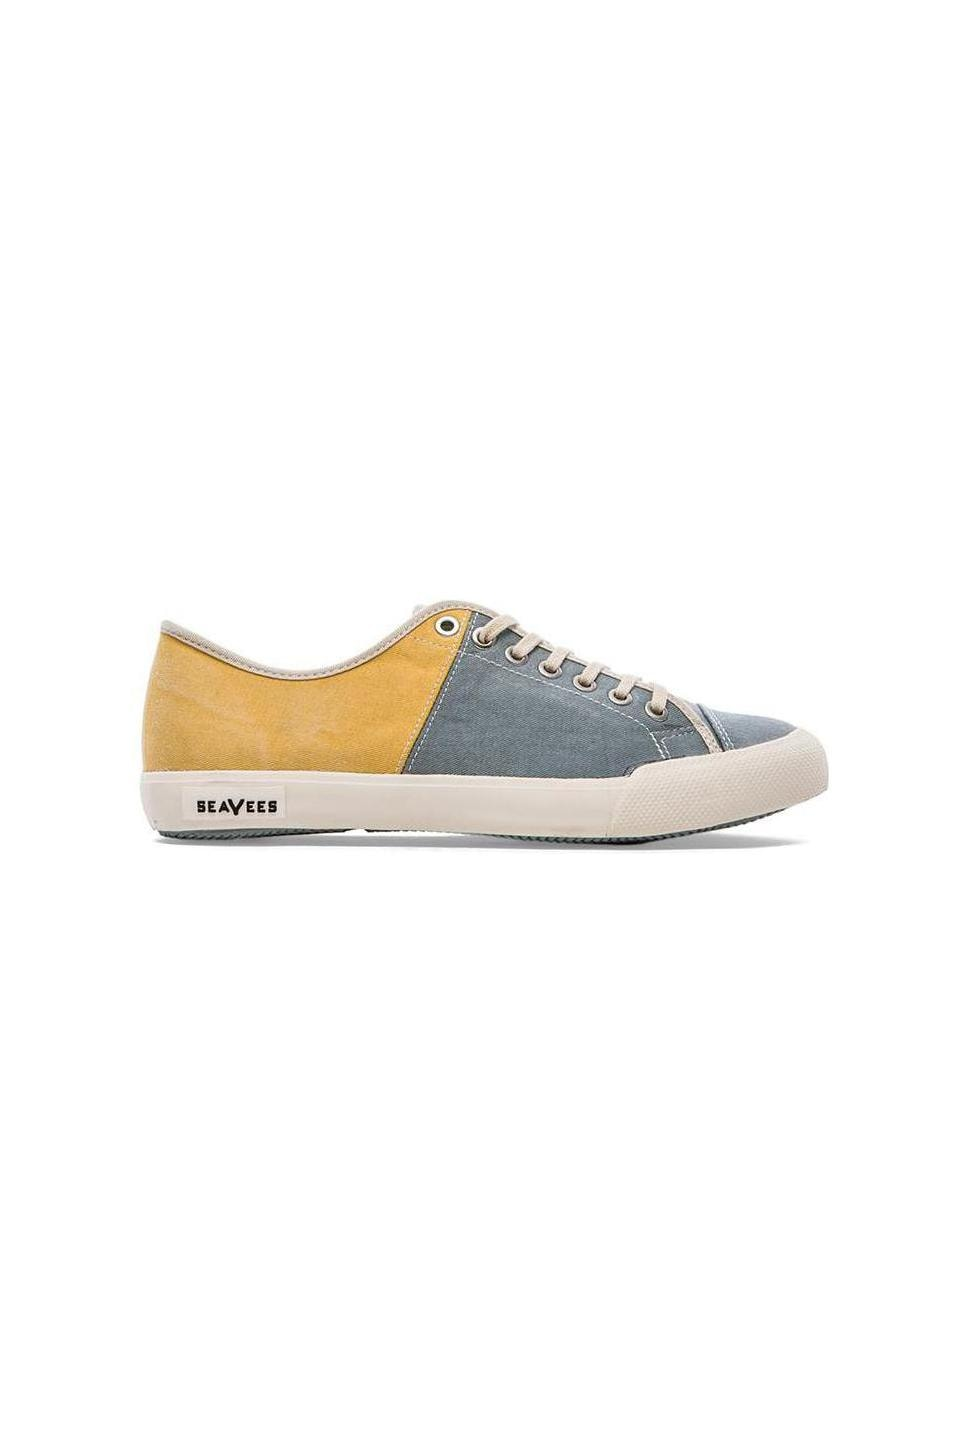 SeaVees 08/61 Army Issue Sneaker in Slate & Marran Yellow